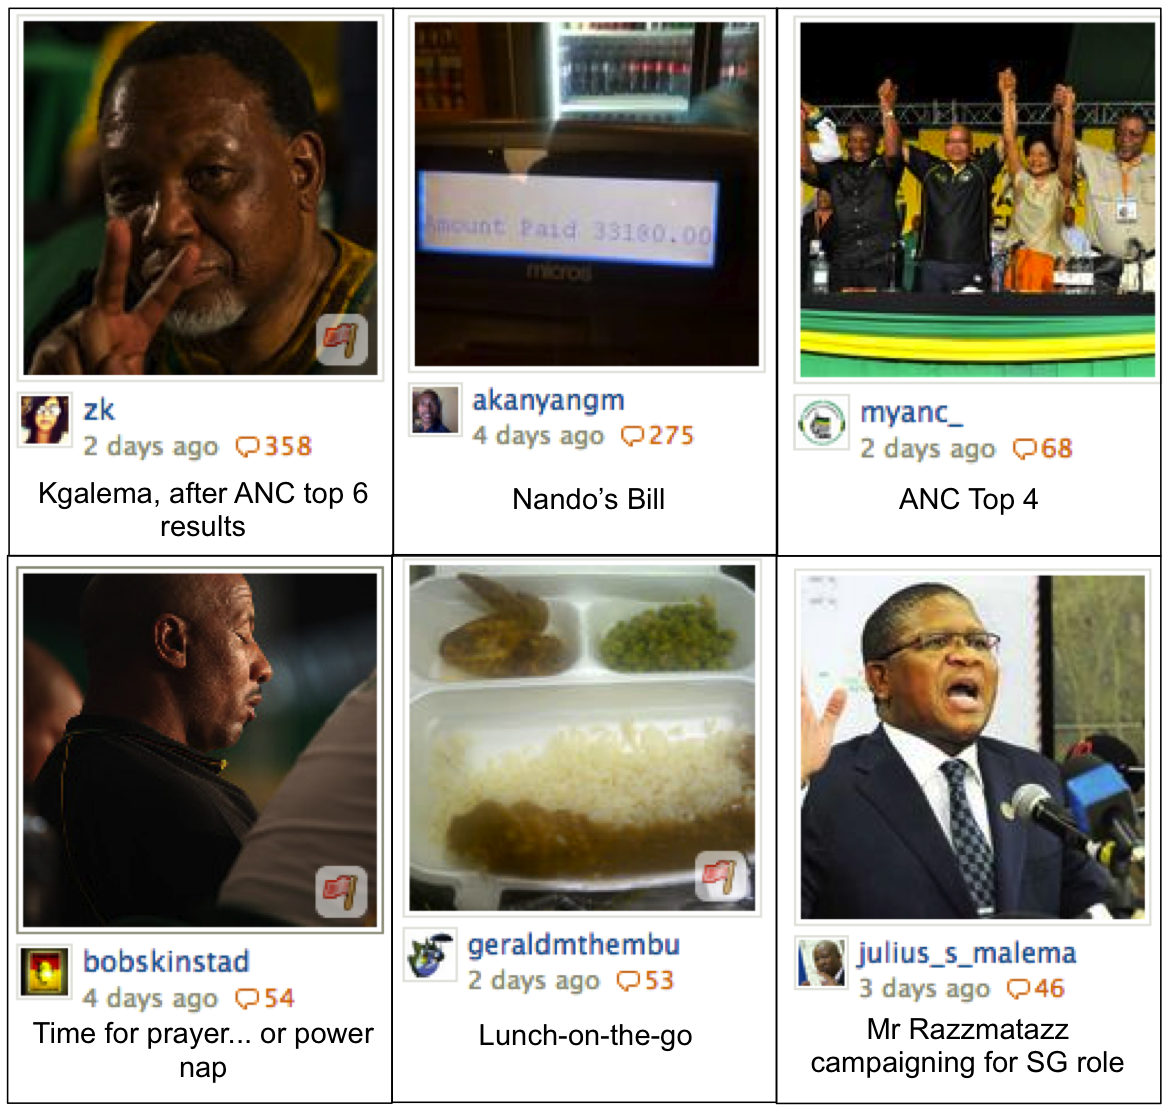 "<img src=http://""ANC_2012_Conference_Top_6_Pics.png""?w=504&h=477 alt=""ANC 2012 Conference Top 6 Pics"">"